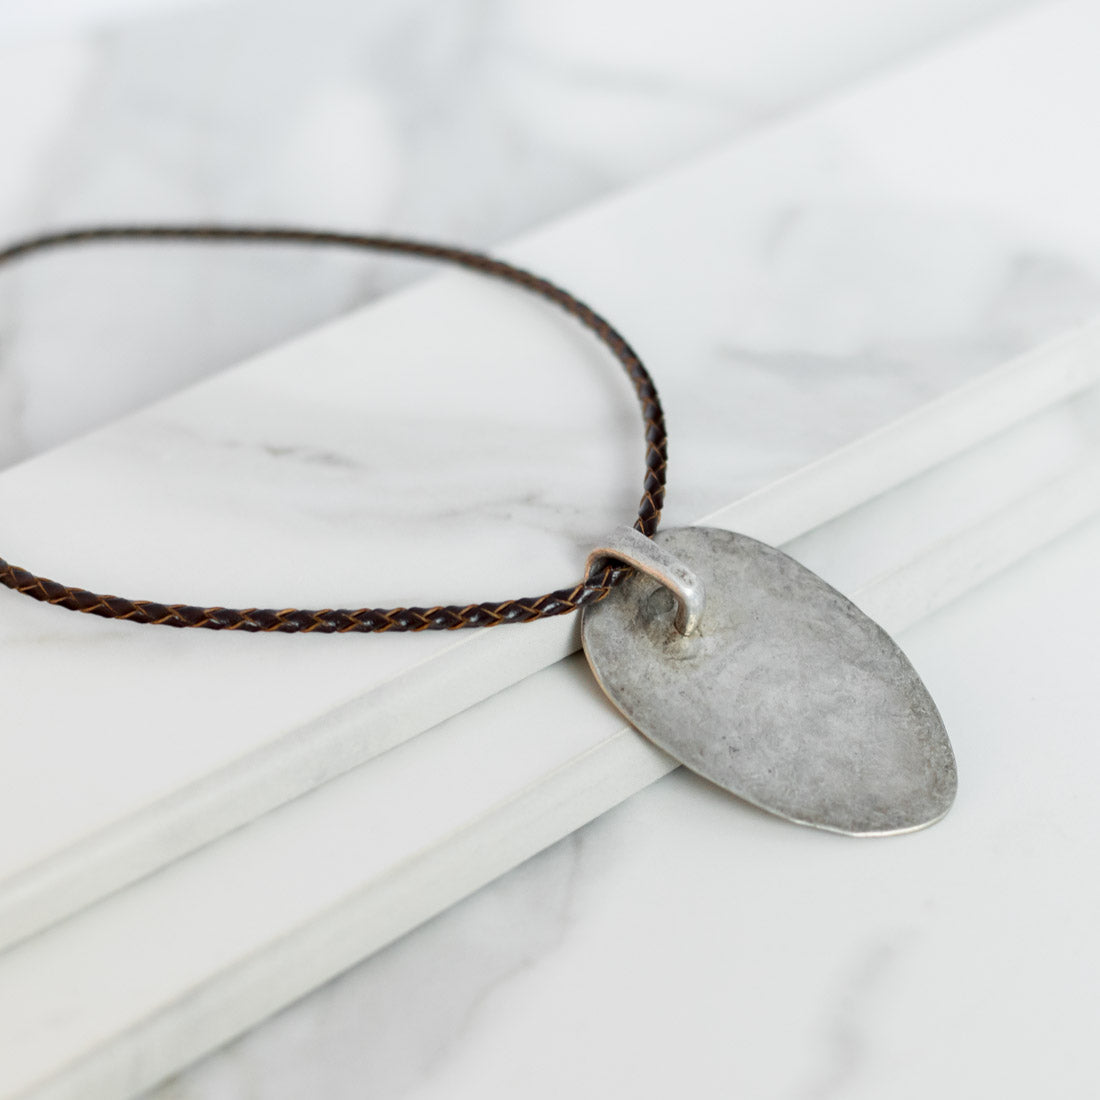 LEATHER ROCKER Necklace - Twisted Silver Jewelry